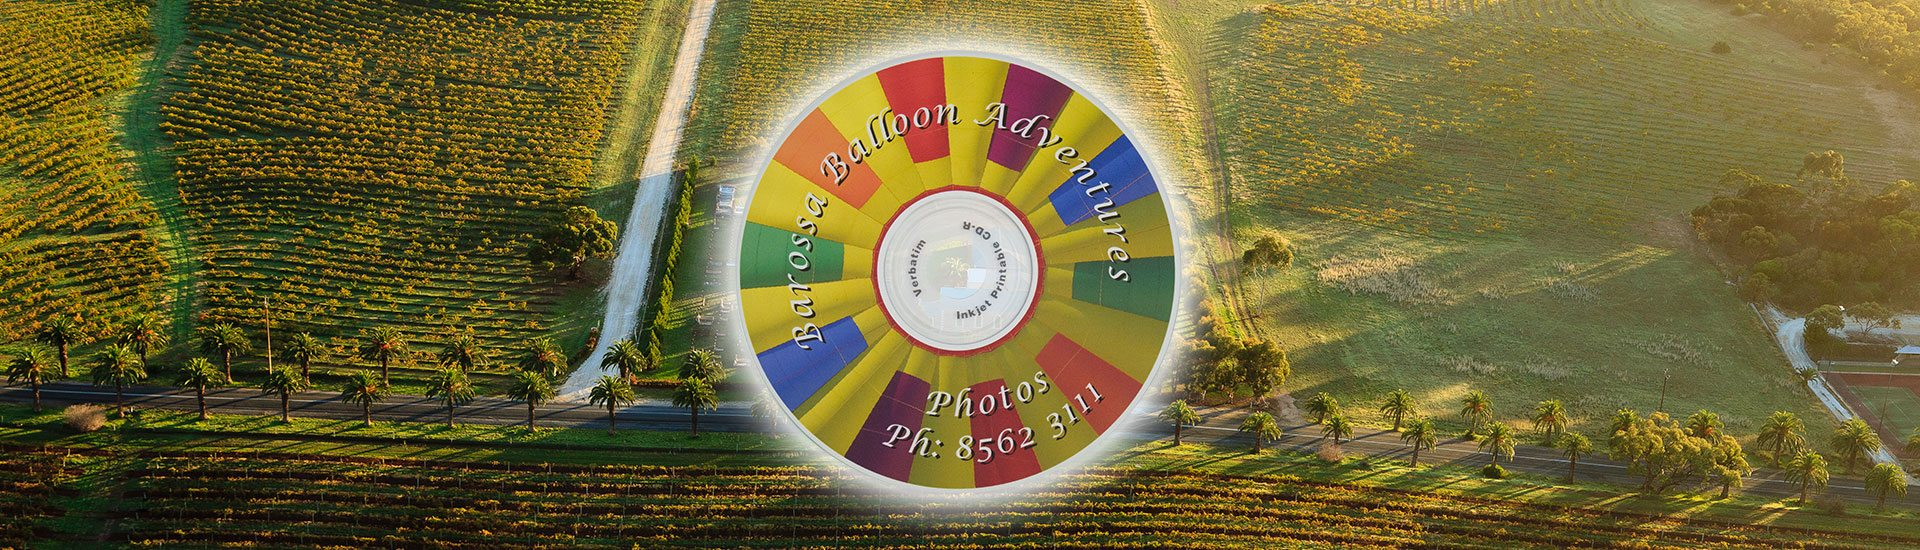 balloon-adventures-flights-over-the-barossa-valley-merchandise-photo-cd